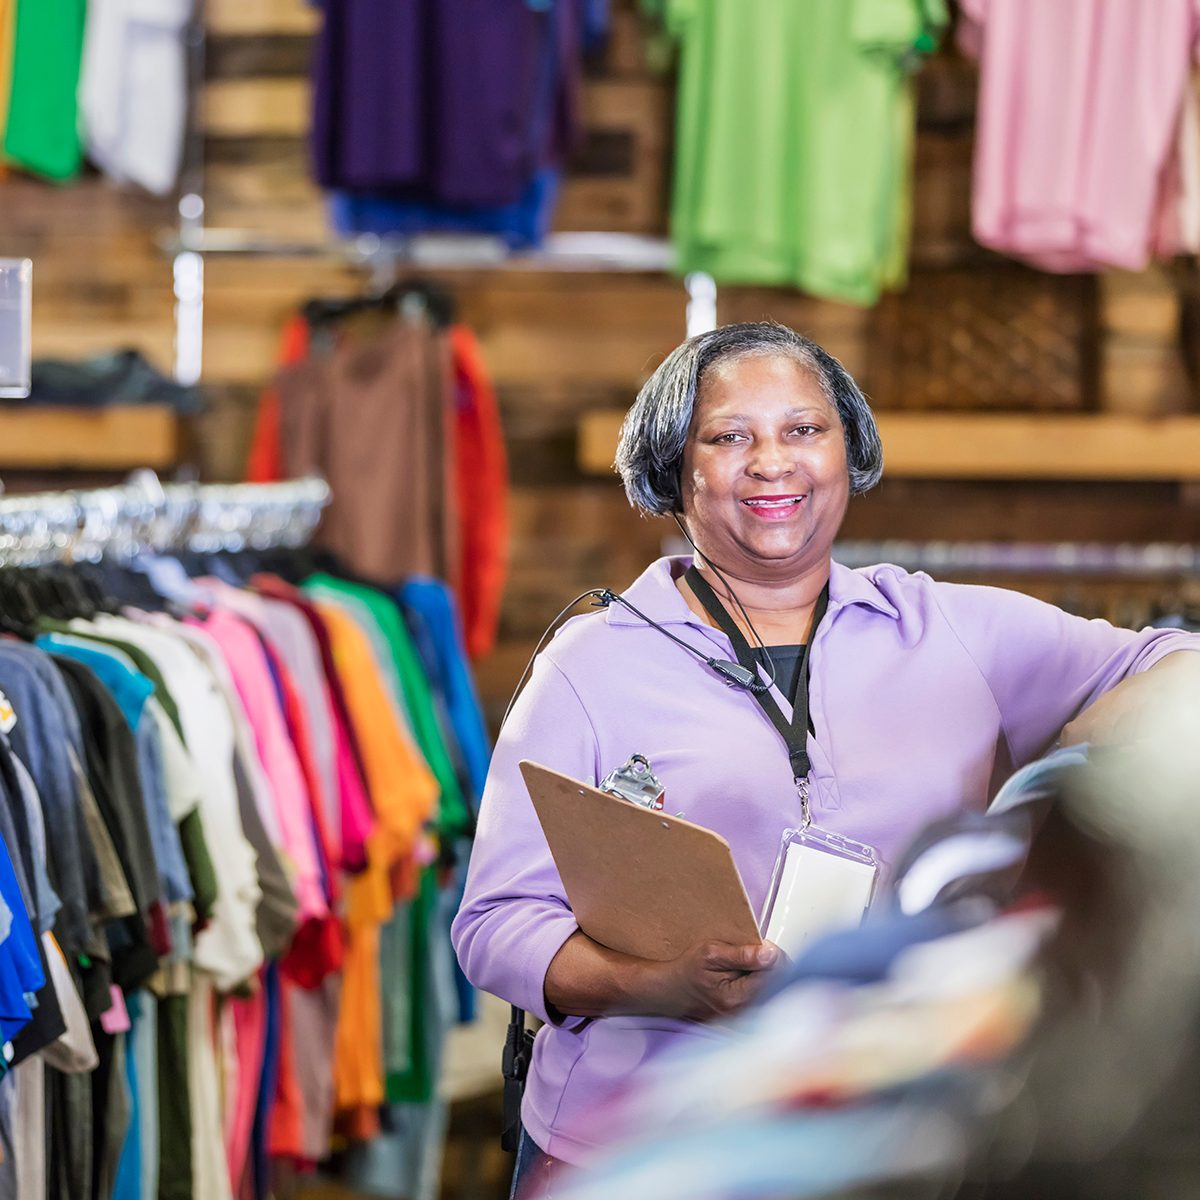 A senior African-American woman in her 60s working in a clothing store. She is standing in the menswear department at a rack of clothing, holding a clipboard.